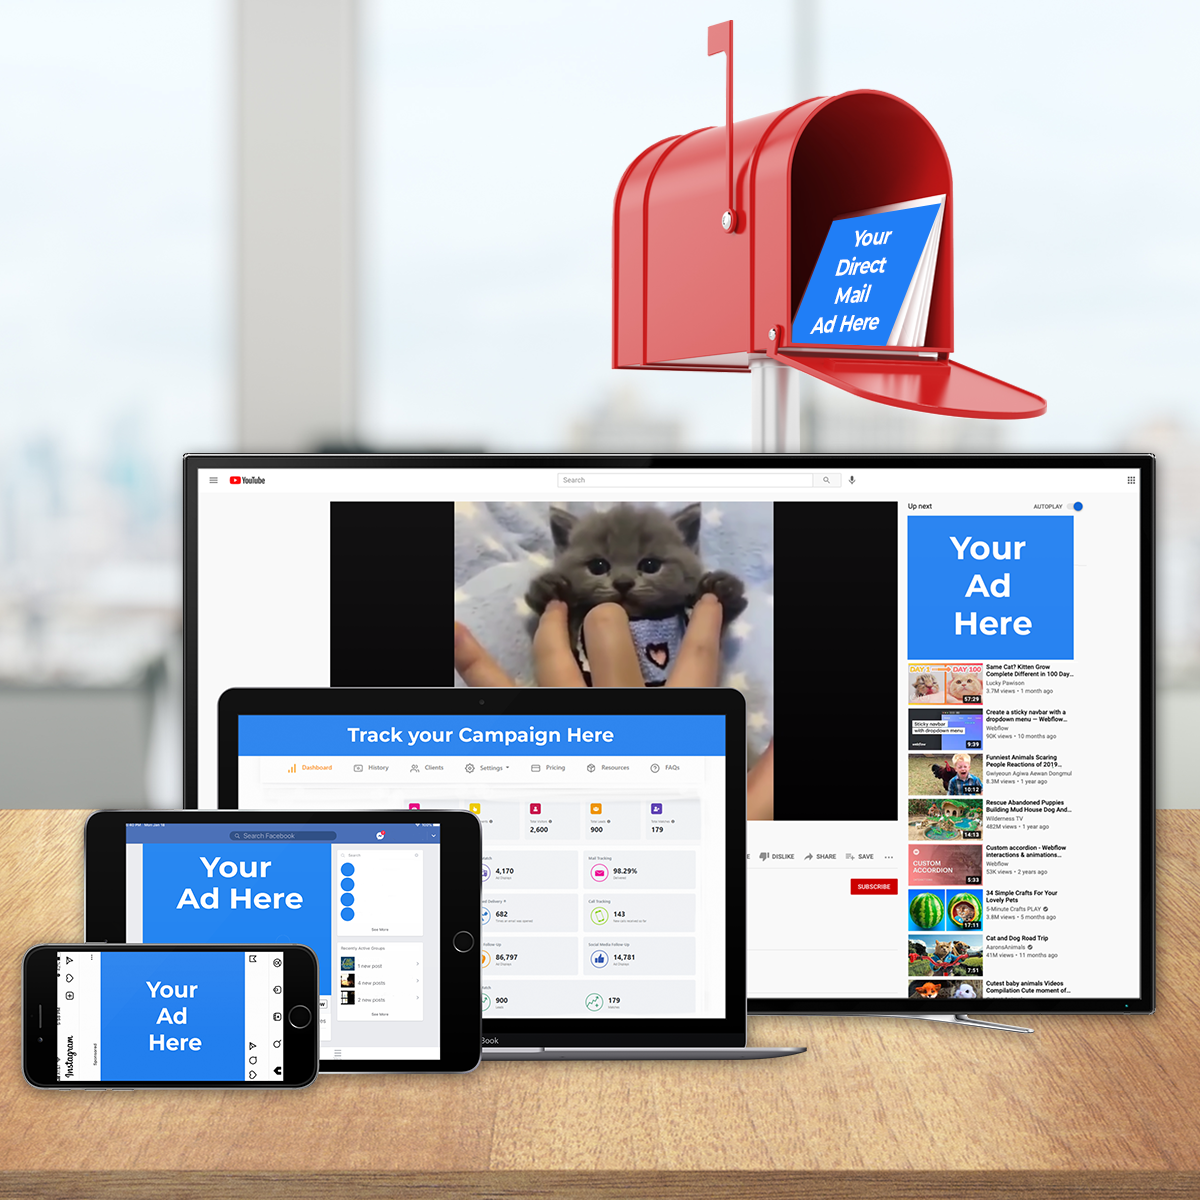 Multichannel Direct Mail ad channels